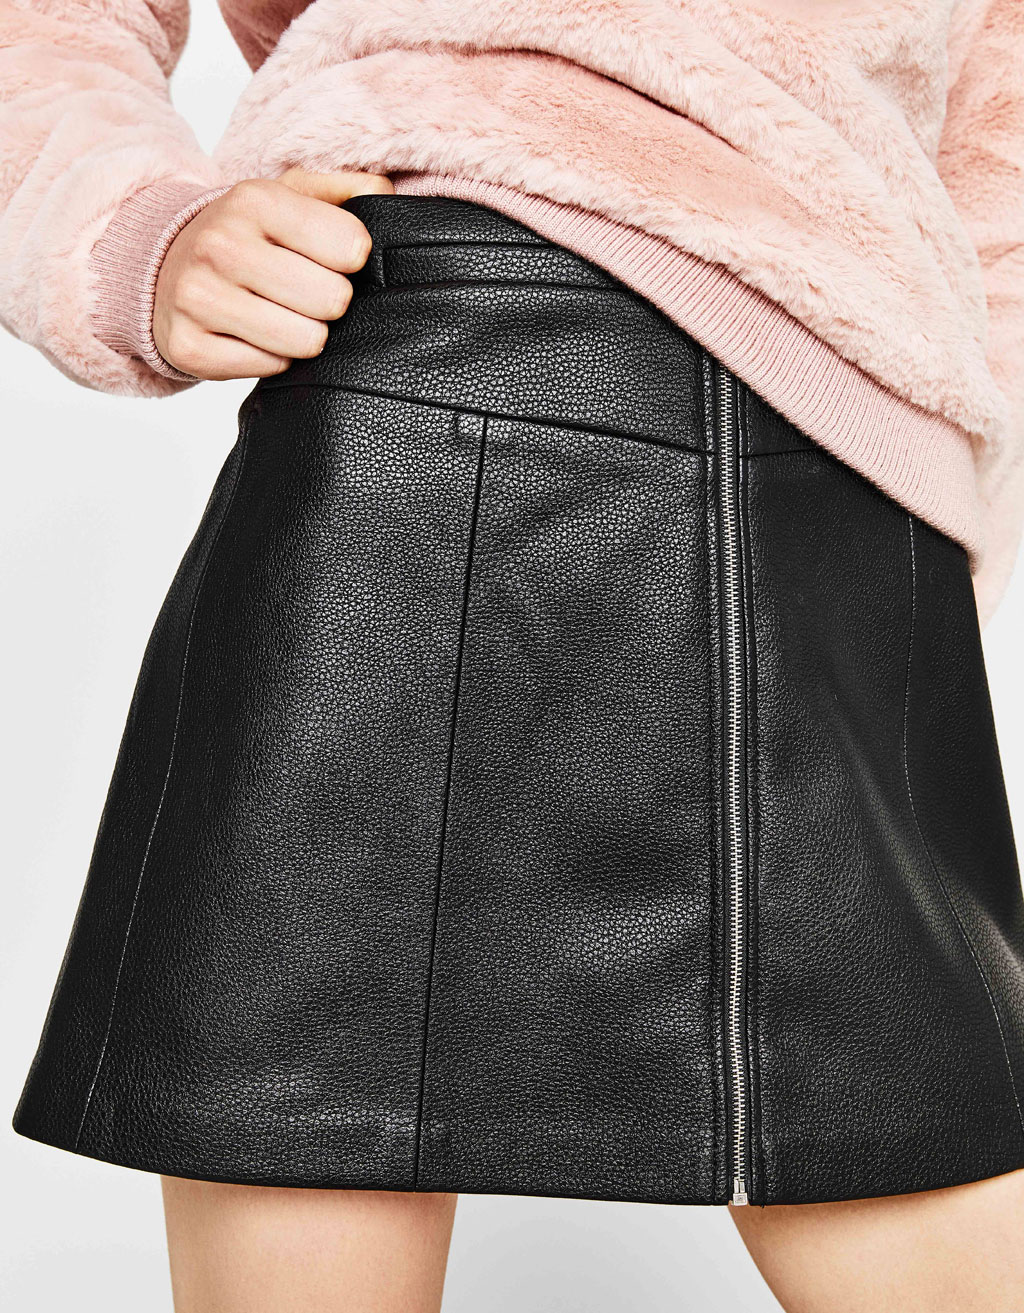 A-line mini skirt with zip